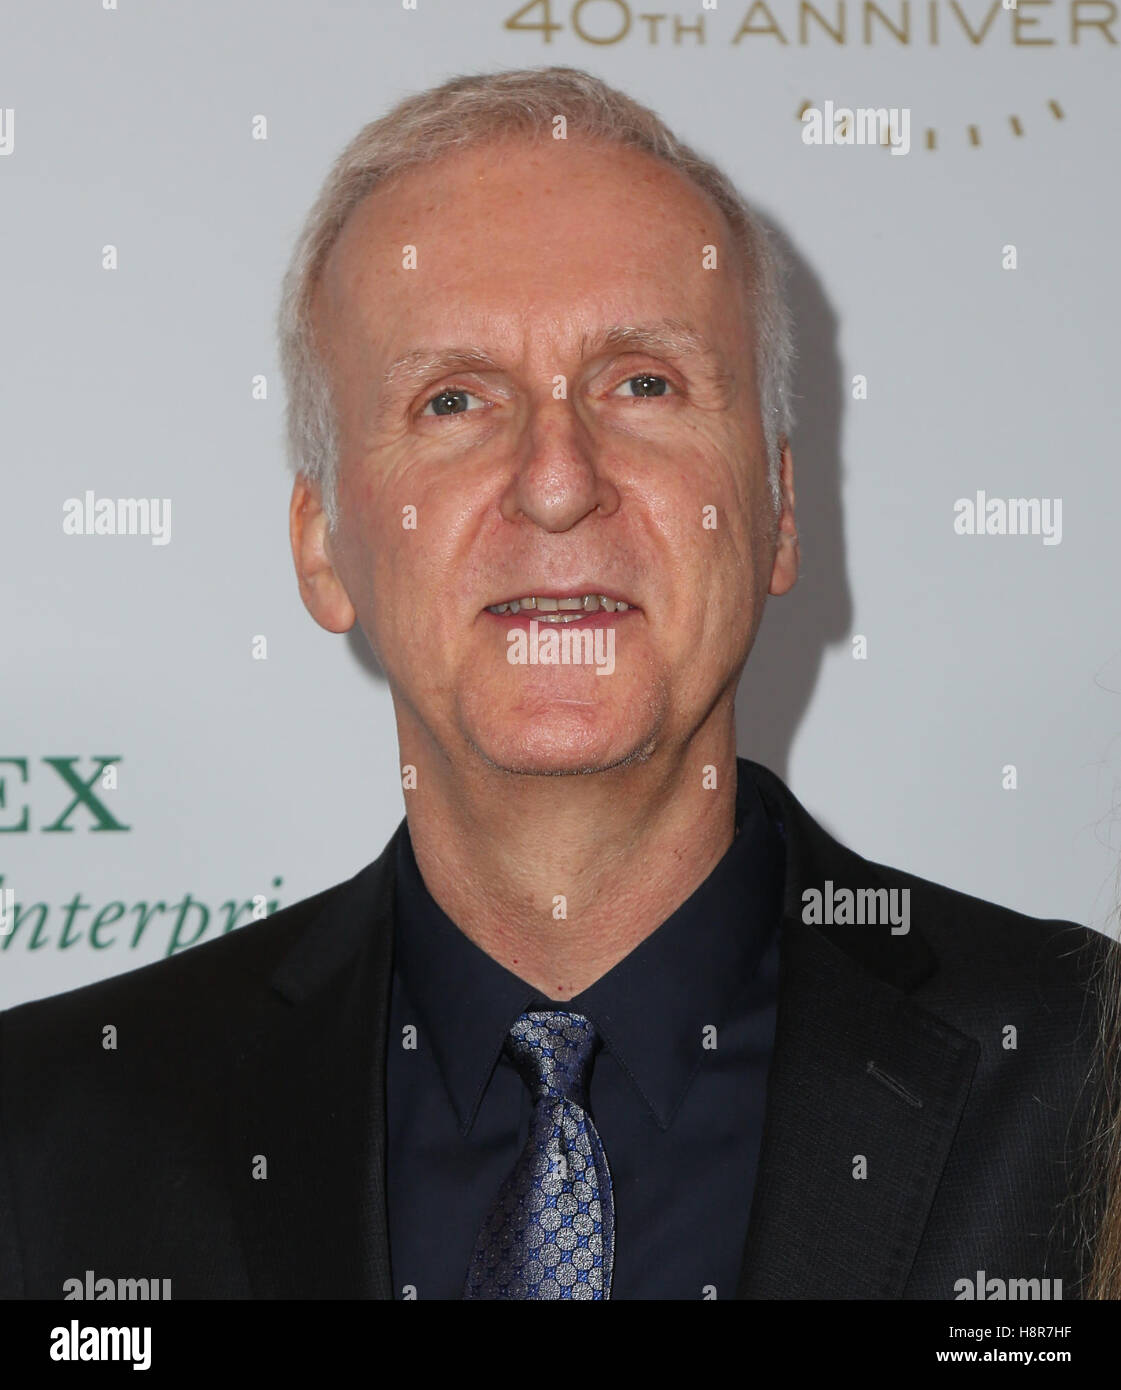 James Cameron: James Cameron Director Usa Stock Photos & James Cameron